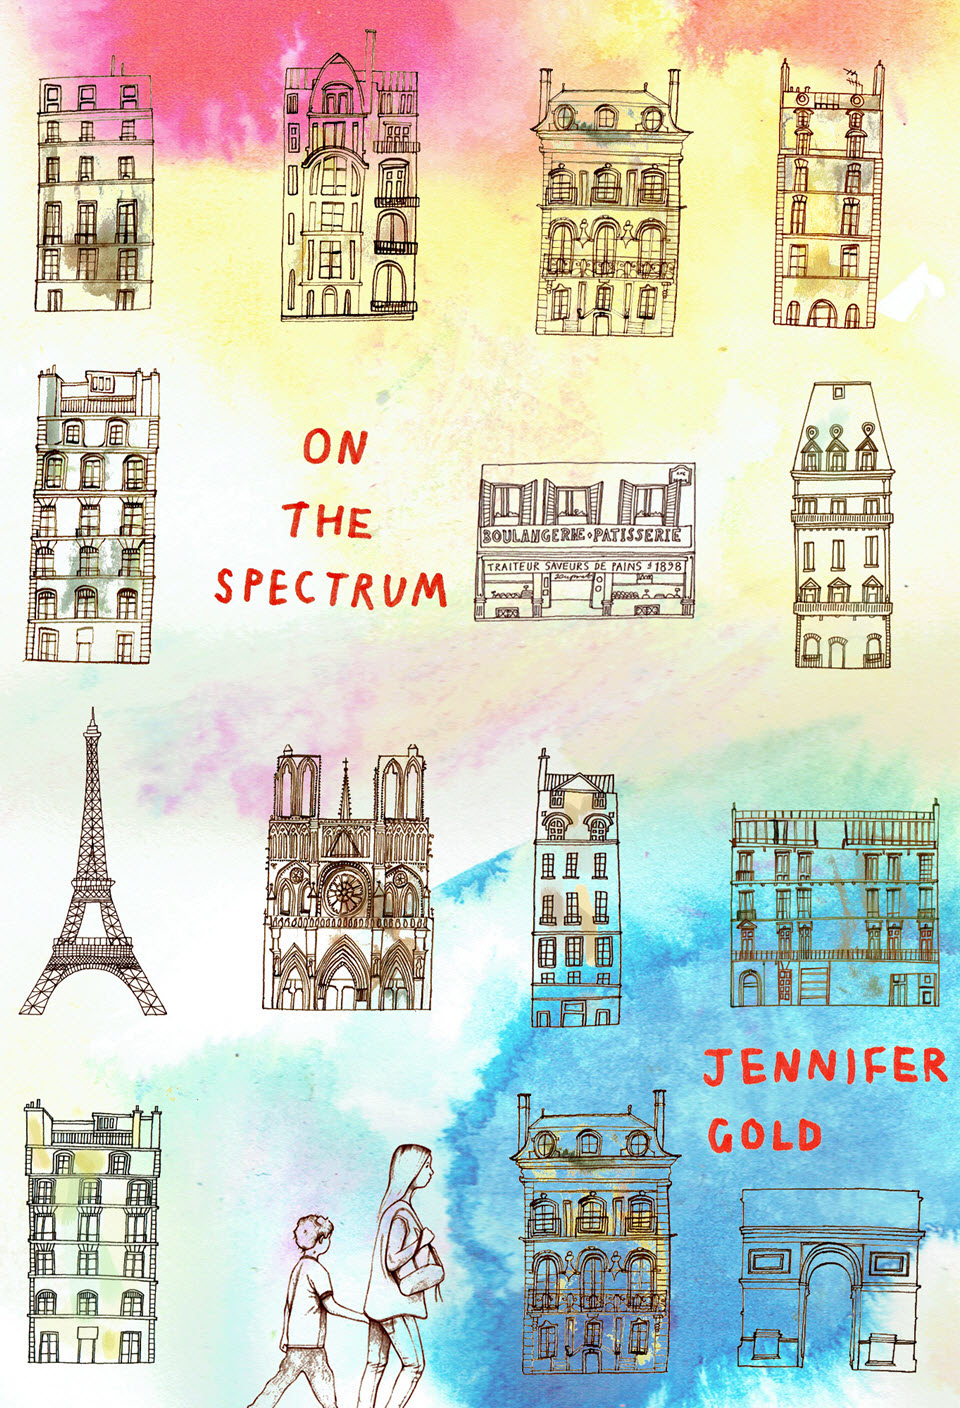 On the Spectrum book bover illustrated by Talya Baldwin for Second Story Press